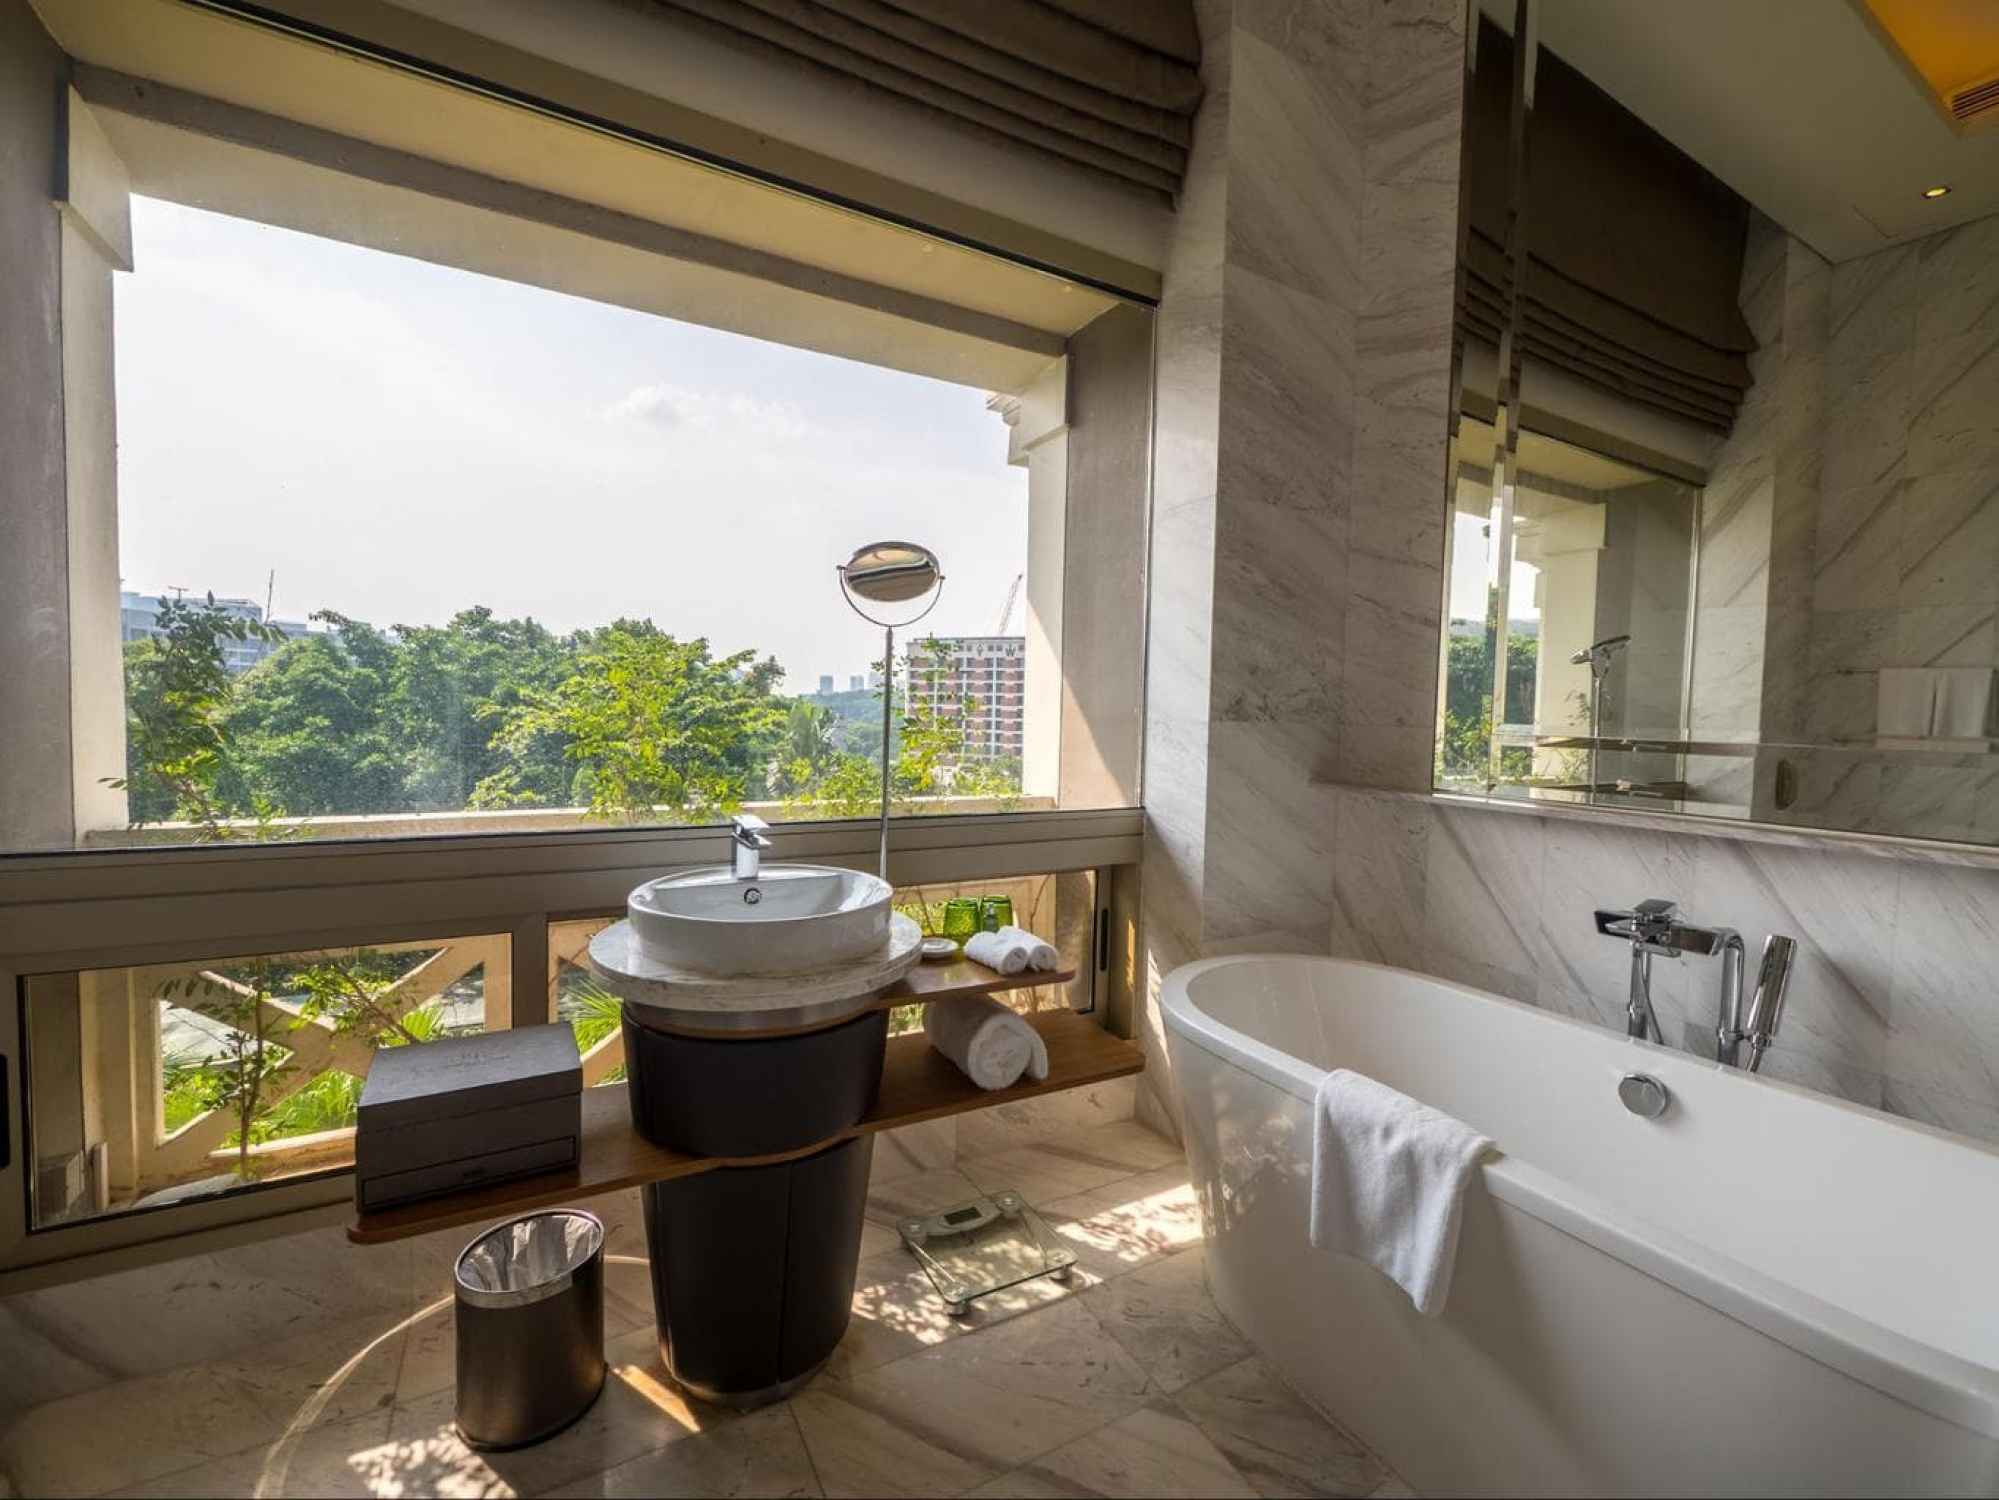 The sun-kissed verandah bathrooms at Hotel Fort Canning